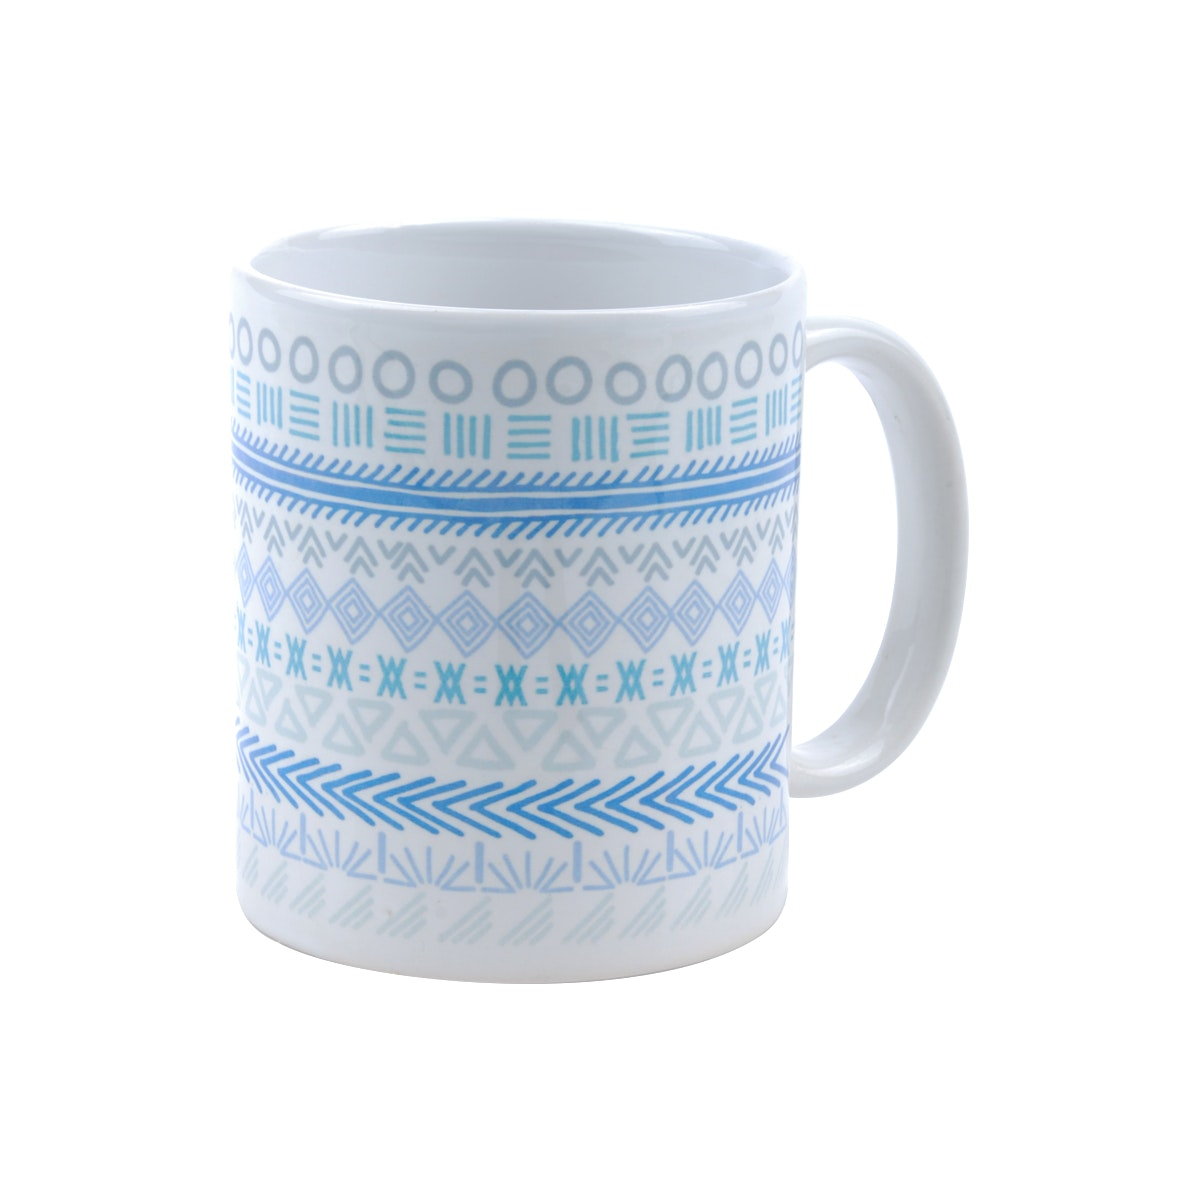 KAWUNG LIVING Icy Ice Mug